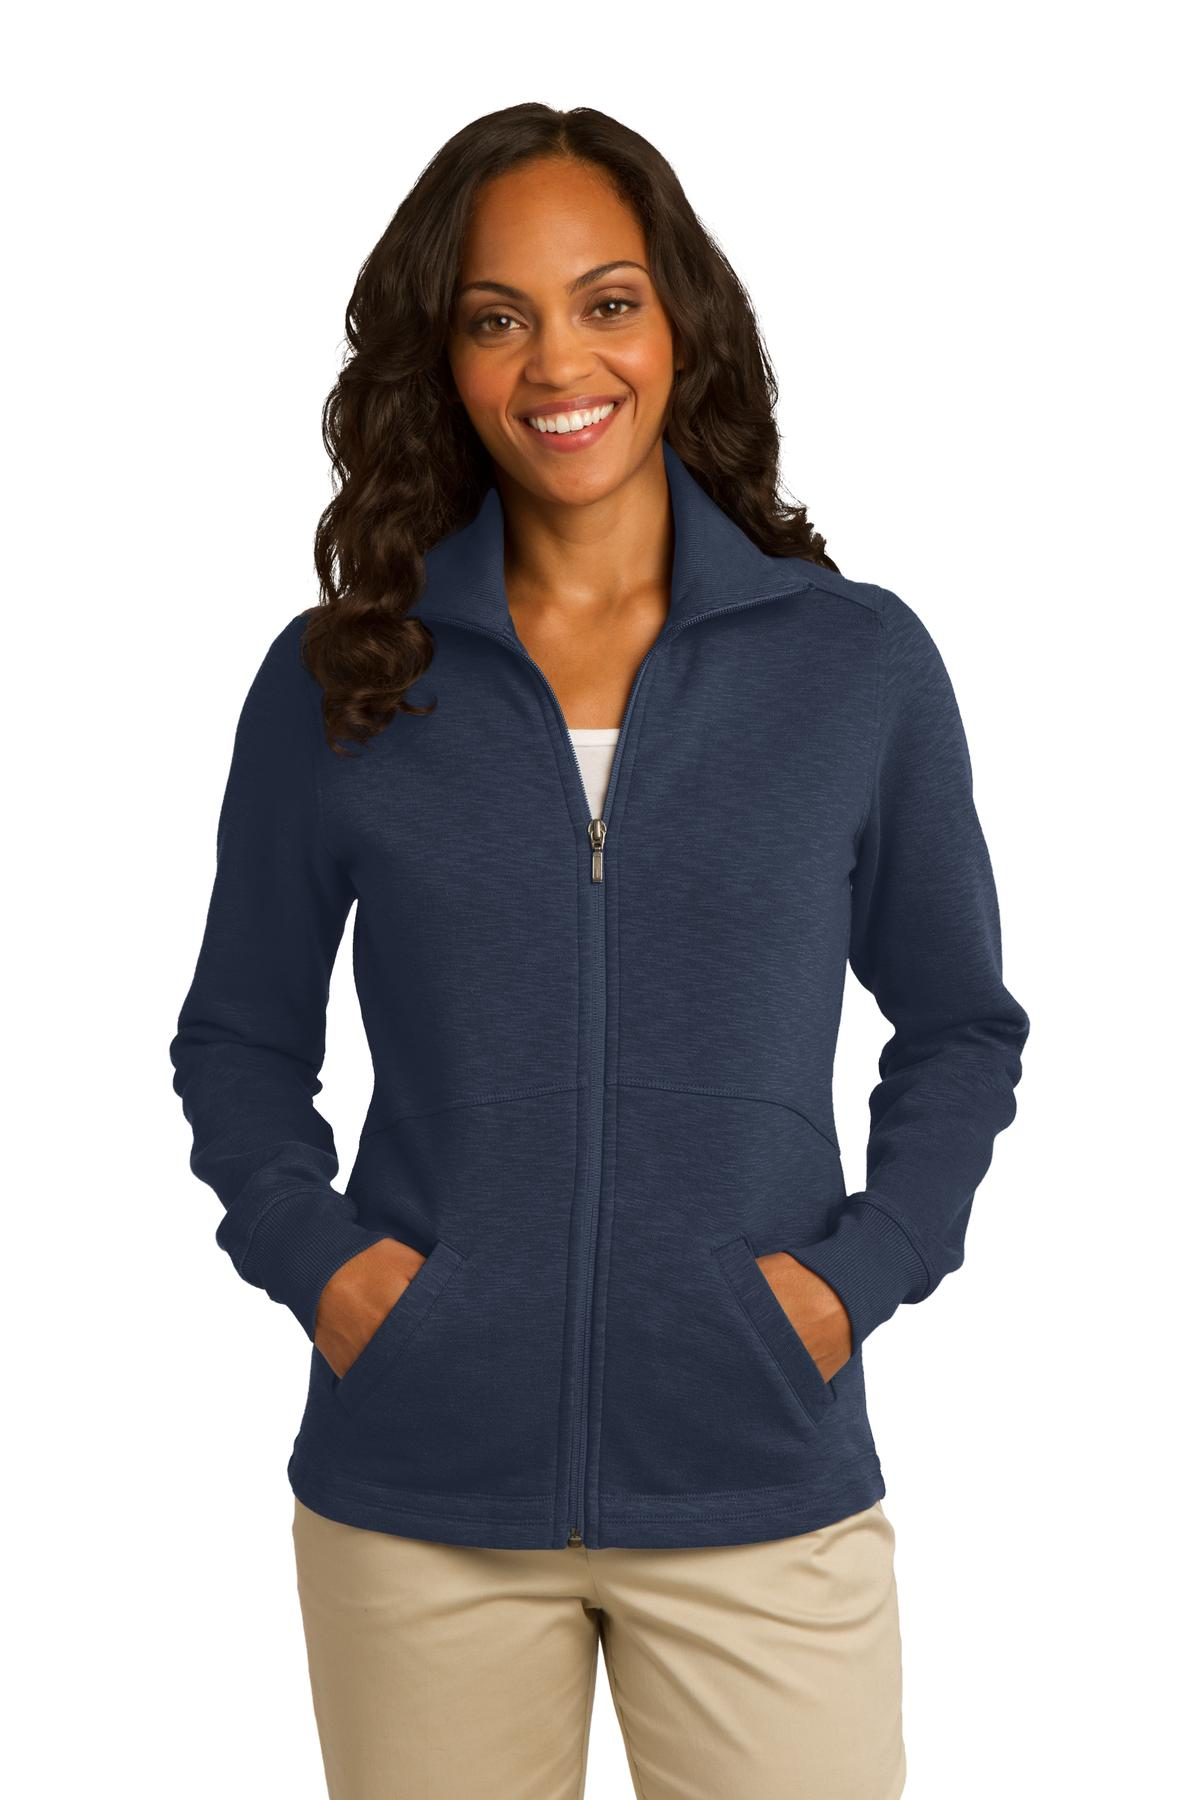 Port Authority L293 Ladies Slub Fleece Full-Zip Jacket - Navy - HIT A Double